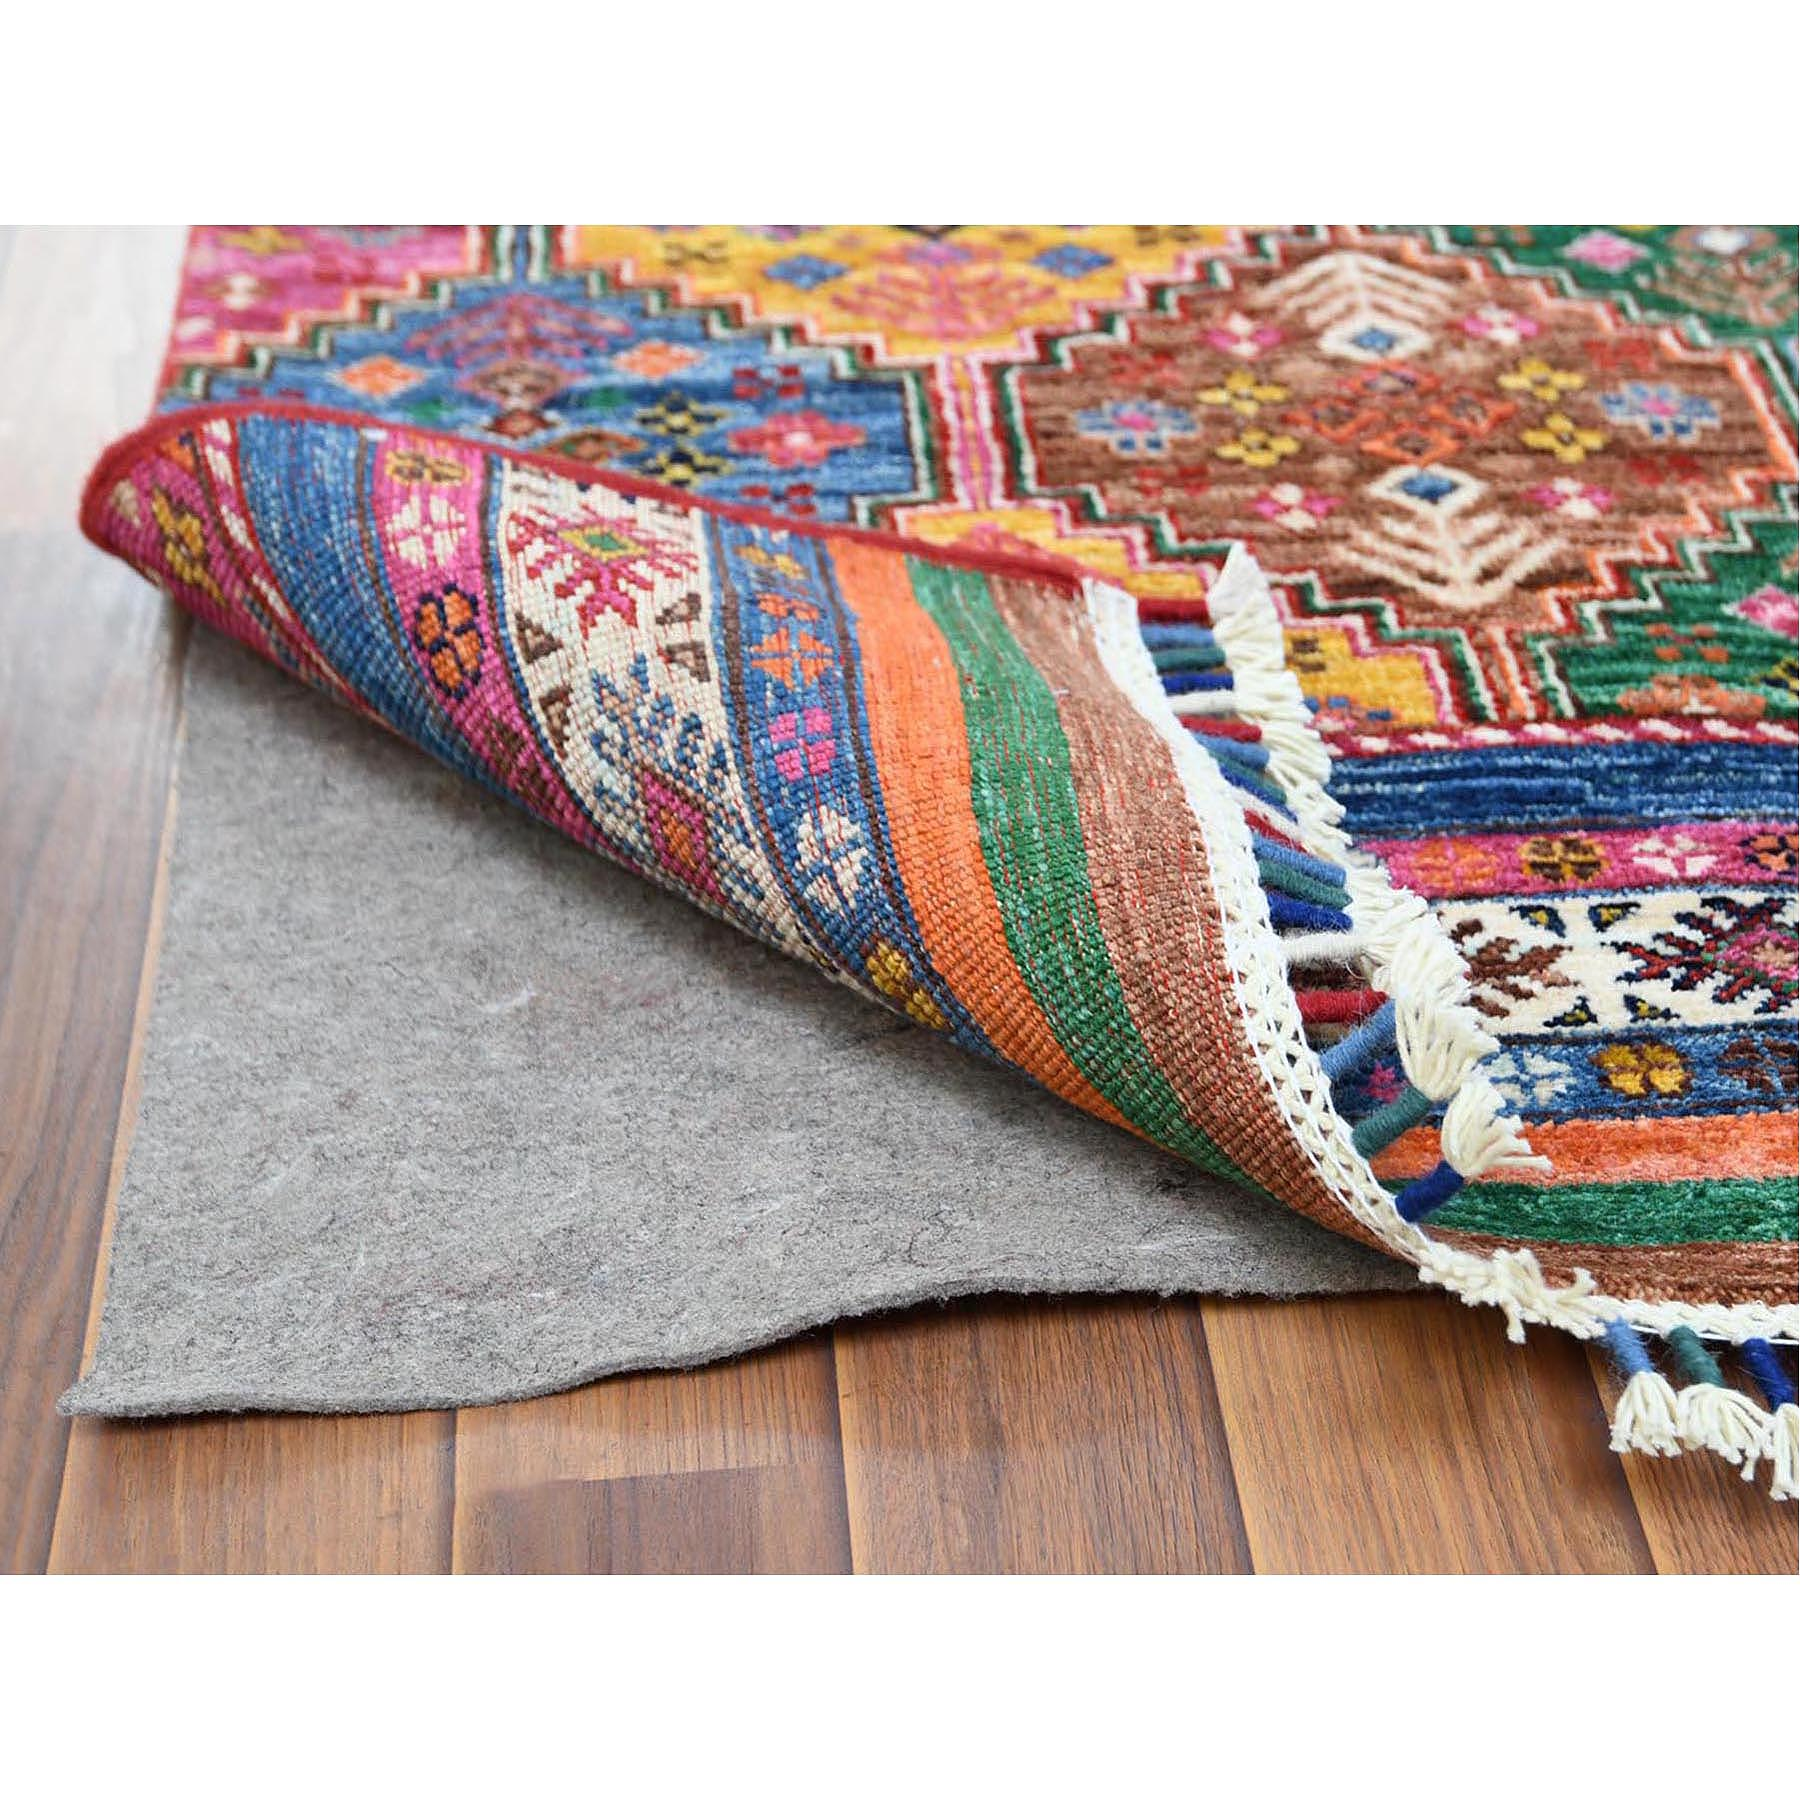 """2'9""""x9'9"""" Red Super Kazak In A Colorful Palette Khorjin Design Pure Afghan Wool Hand Knotted Oriental Runner Rug"""